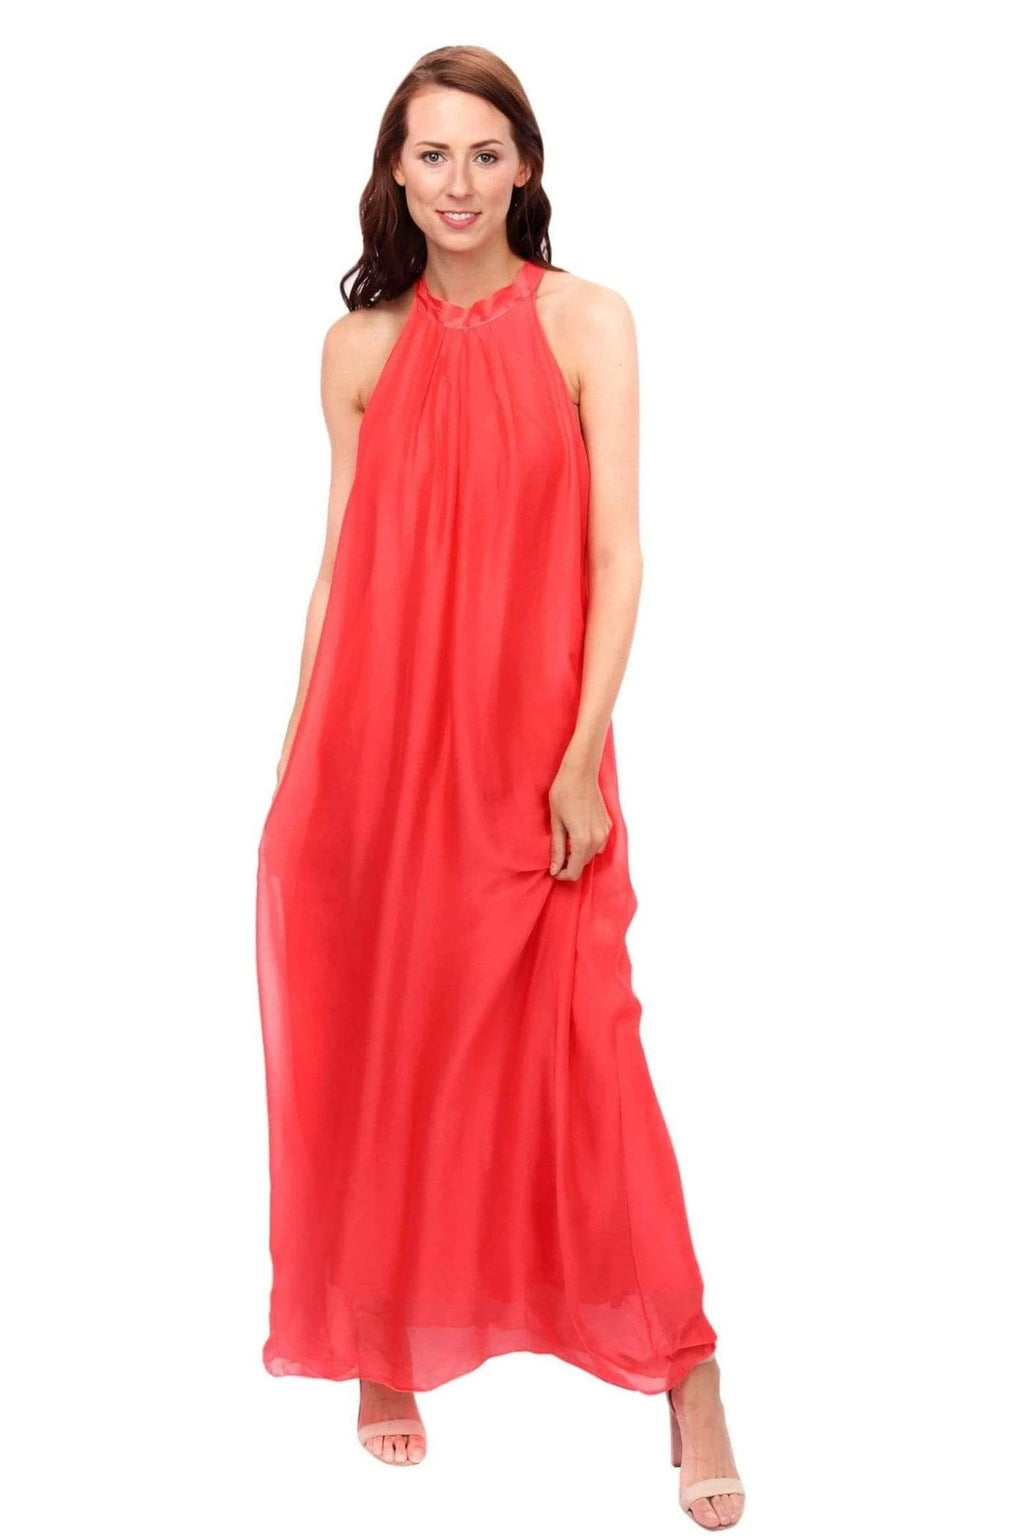 shop-sofia Tania  A Line Sleeveless Maxi Dress Sofia Collections Italian Silk Linen Satin